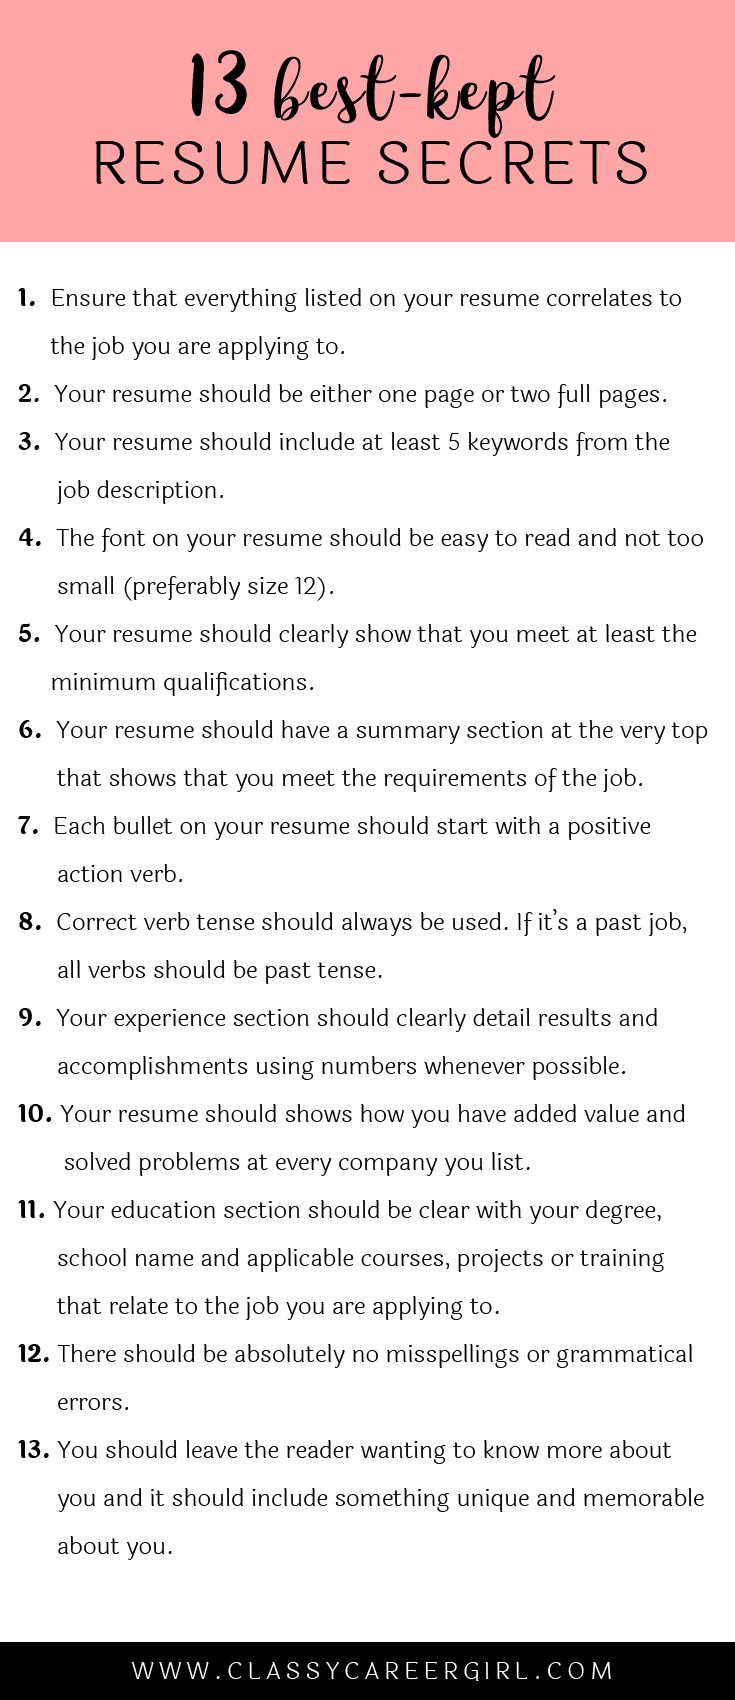 Opposenewapstandardsus  Picturesque  Ideas About Resume On Pinterest  Cv Format Resume Cv And  With Exquisite Some Hiring Managers Will Toss Your Resume Out If You Dont Know These  With Comely Assistant Branch Manager Resume Also What Is A Cover Letter To A Resume In Addition Do I Need A Cover Letter For A Resume And What Is A Resume For A Job Application As Well As How To Make Resume On Word  Additionally Aerospace Engineer Resume From Pinterestcom With Opposenewapstandardsus  Exquisite  Ideas About Resume On Pinterest  Cv Format Resume Cv And  With Comely Some Hiring Managers Will Toss Your Resume Out If You Dont Know These  And Picturesque Assistant Branch Manager Resume Also What Is A Cover Letter To A Resume In Addition Do I Need A Cover Letter For A Resume From Pinterestcom